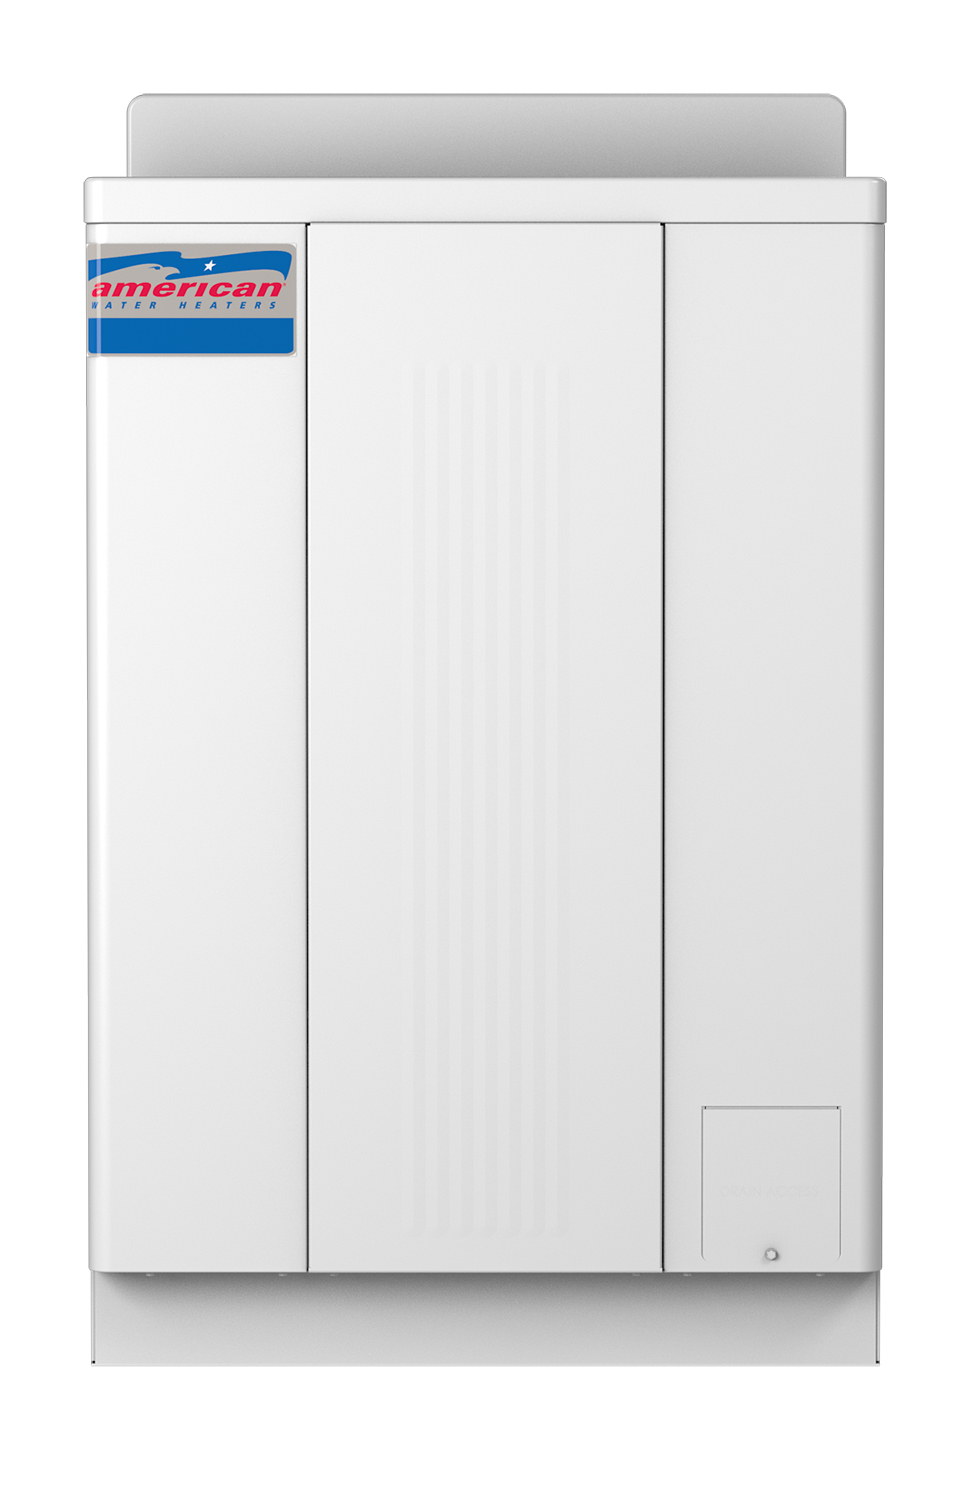 Superior American Water Heaters A Bank